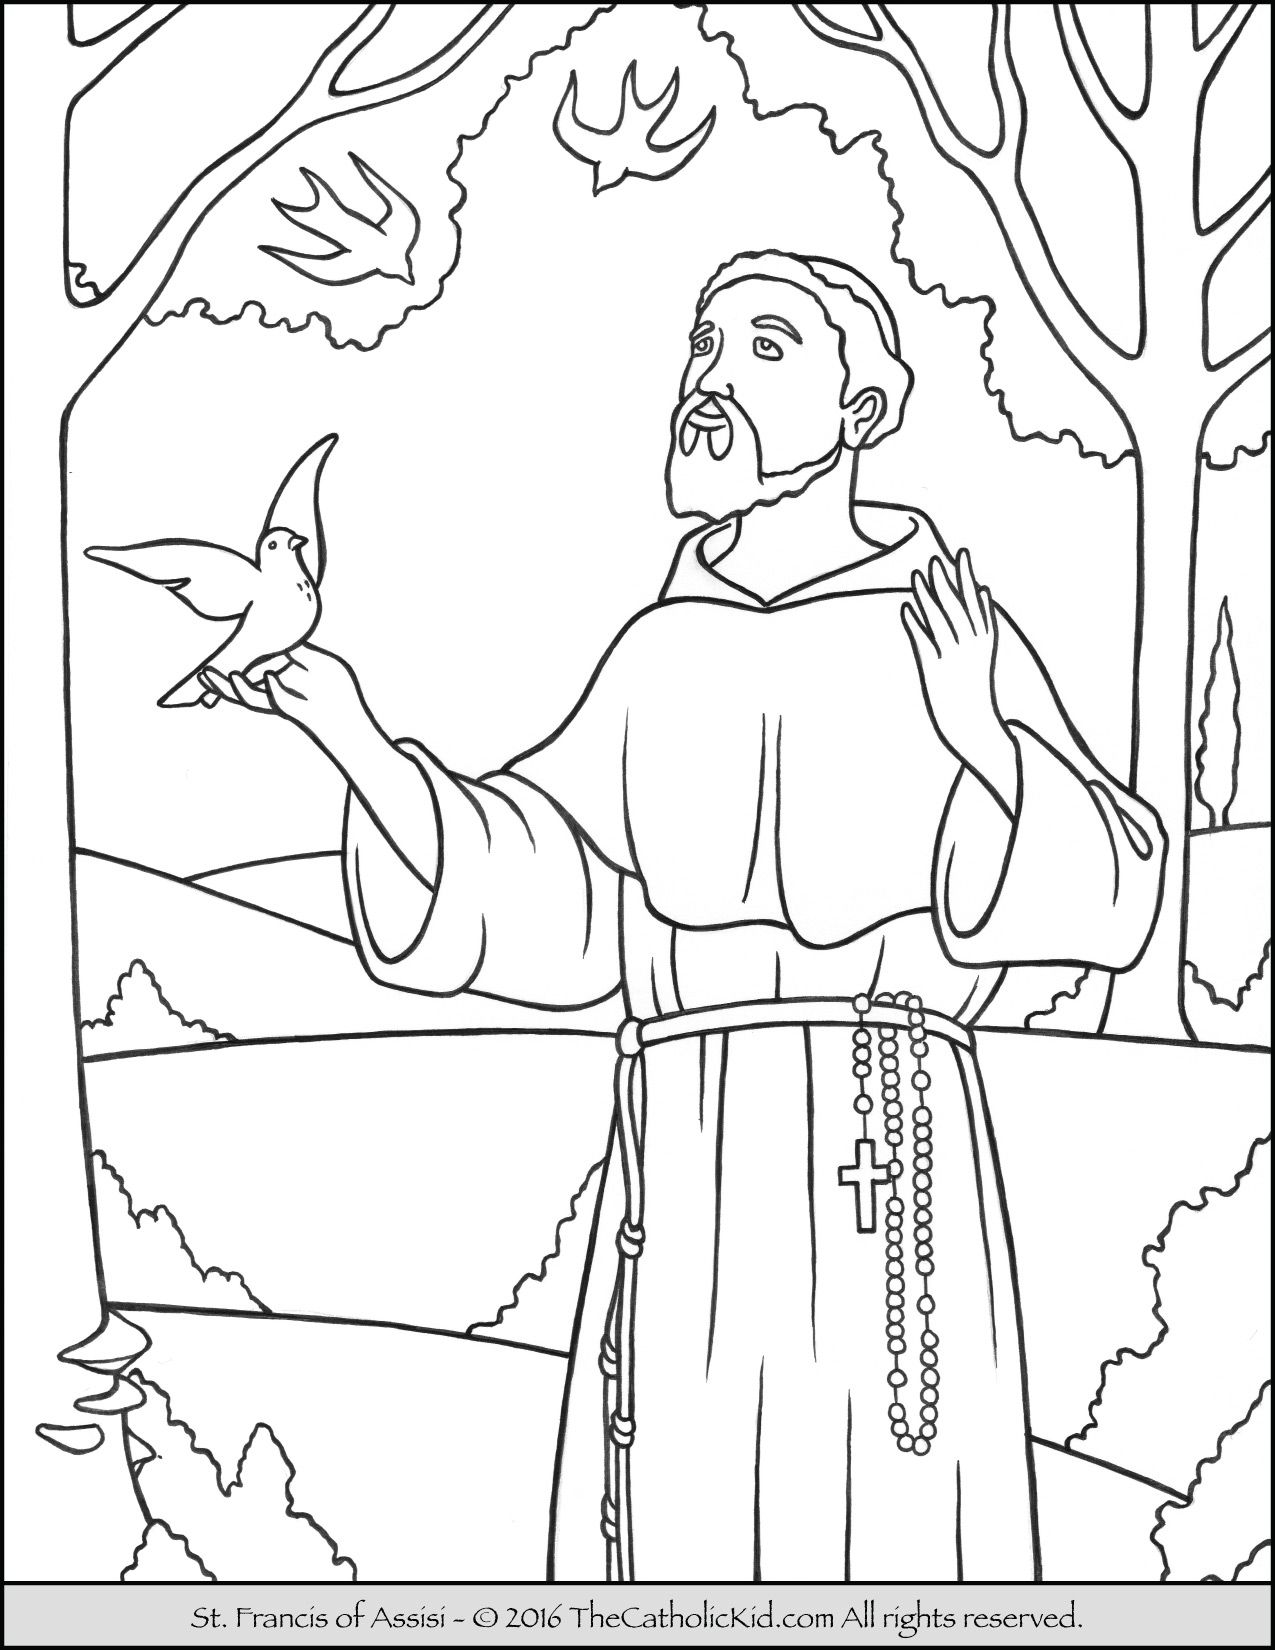 Saint Francis Coloring Page - The Catholic Kid - Catholic Coloring ...